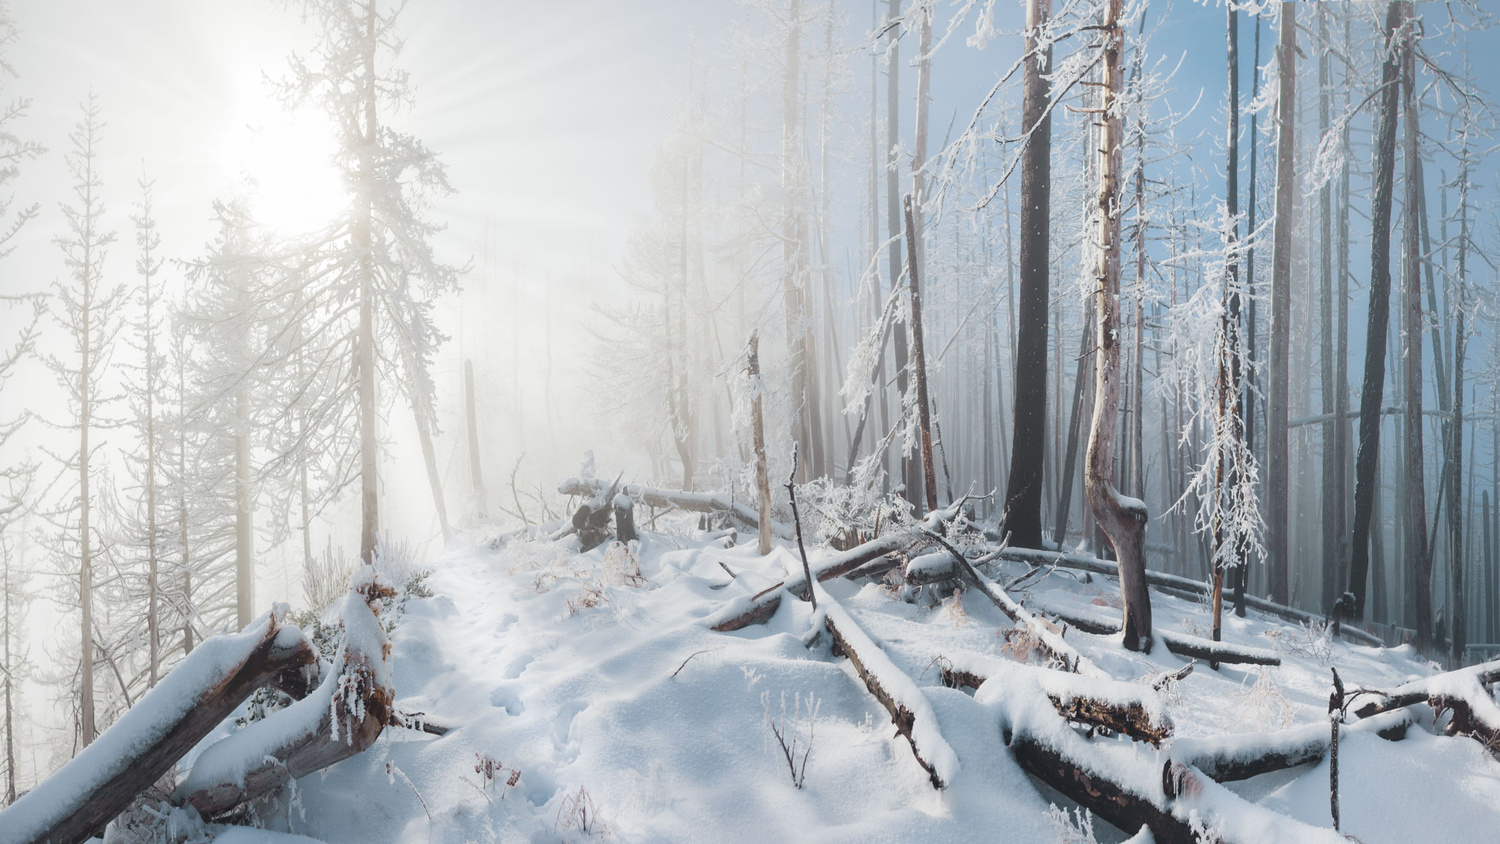 Winter forest scene on Mt.Hood in Oregon State